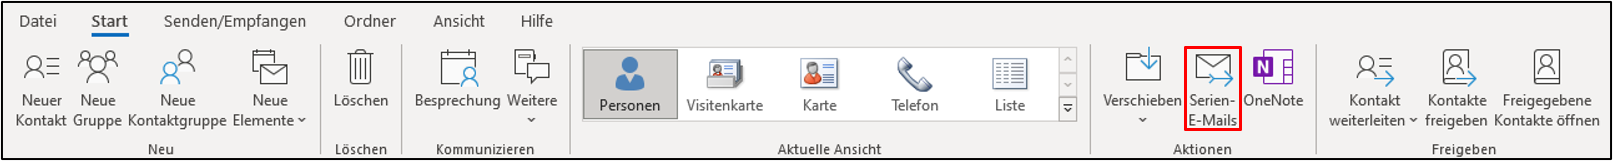 outlook-serienmails